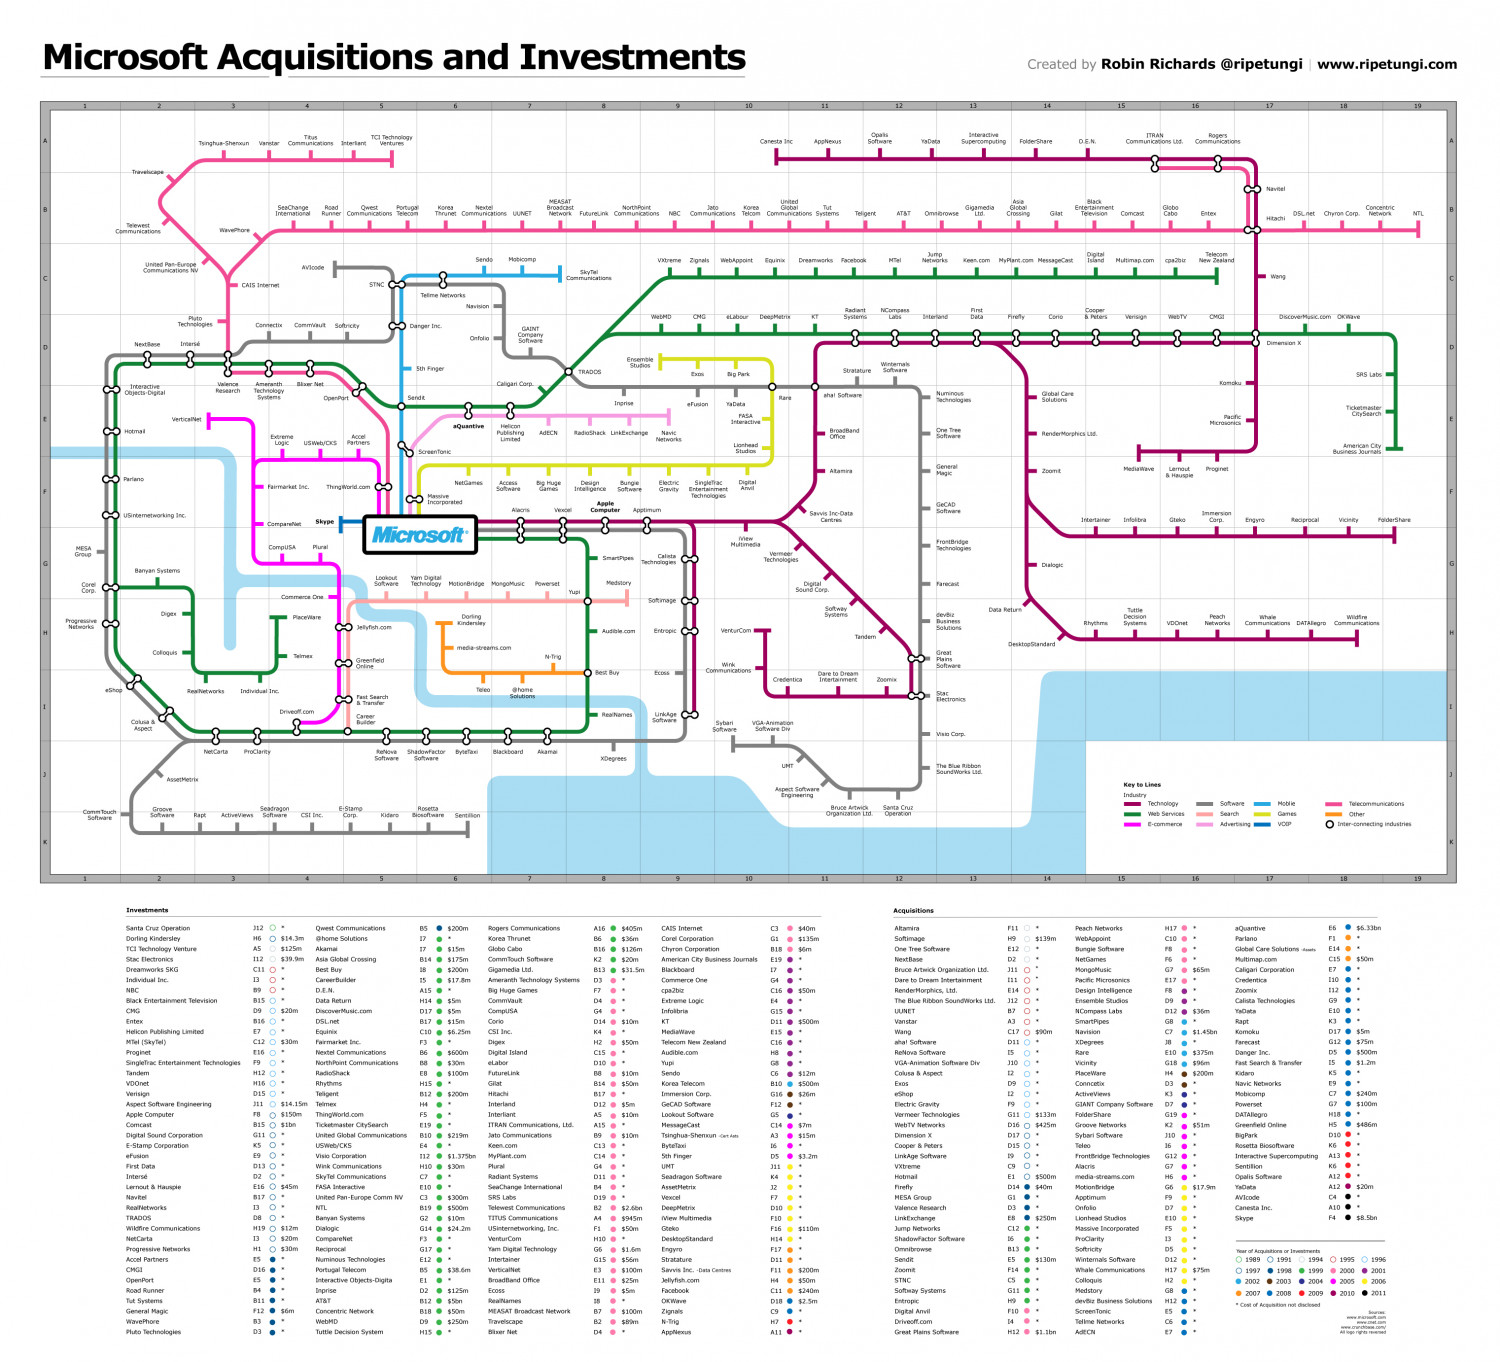 Microsoft Acquisition and Investments Infographic